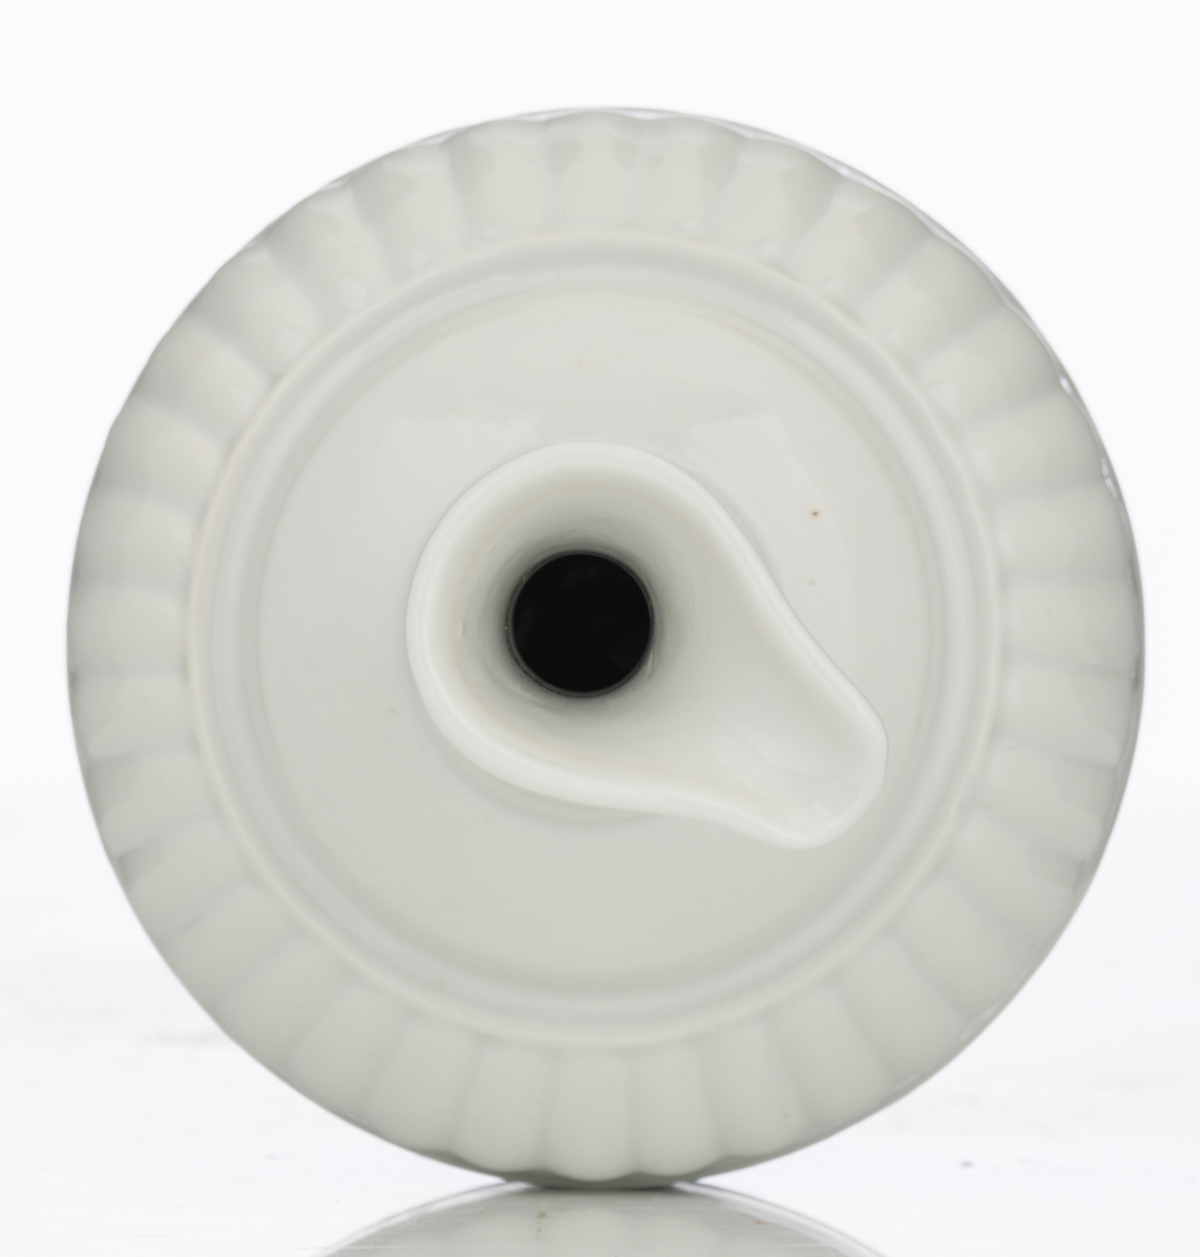 Lot 26 - A Chinese white glazed ewer with incised decoration, with a Yongzheng mark, H 20 cm